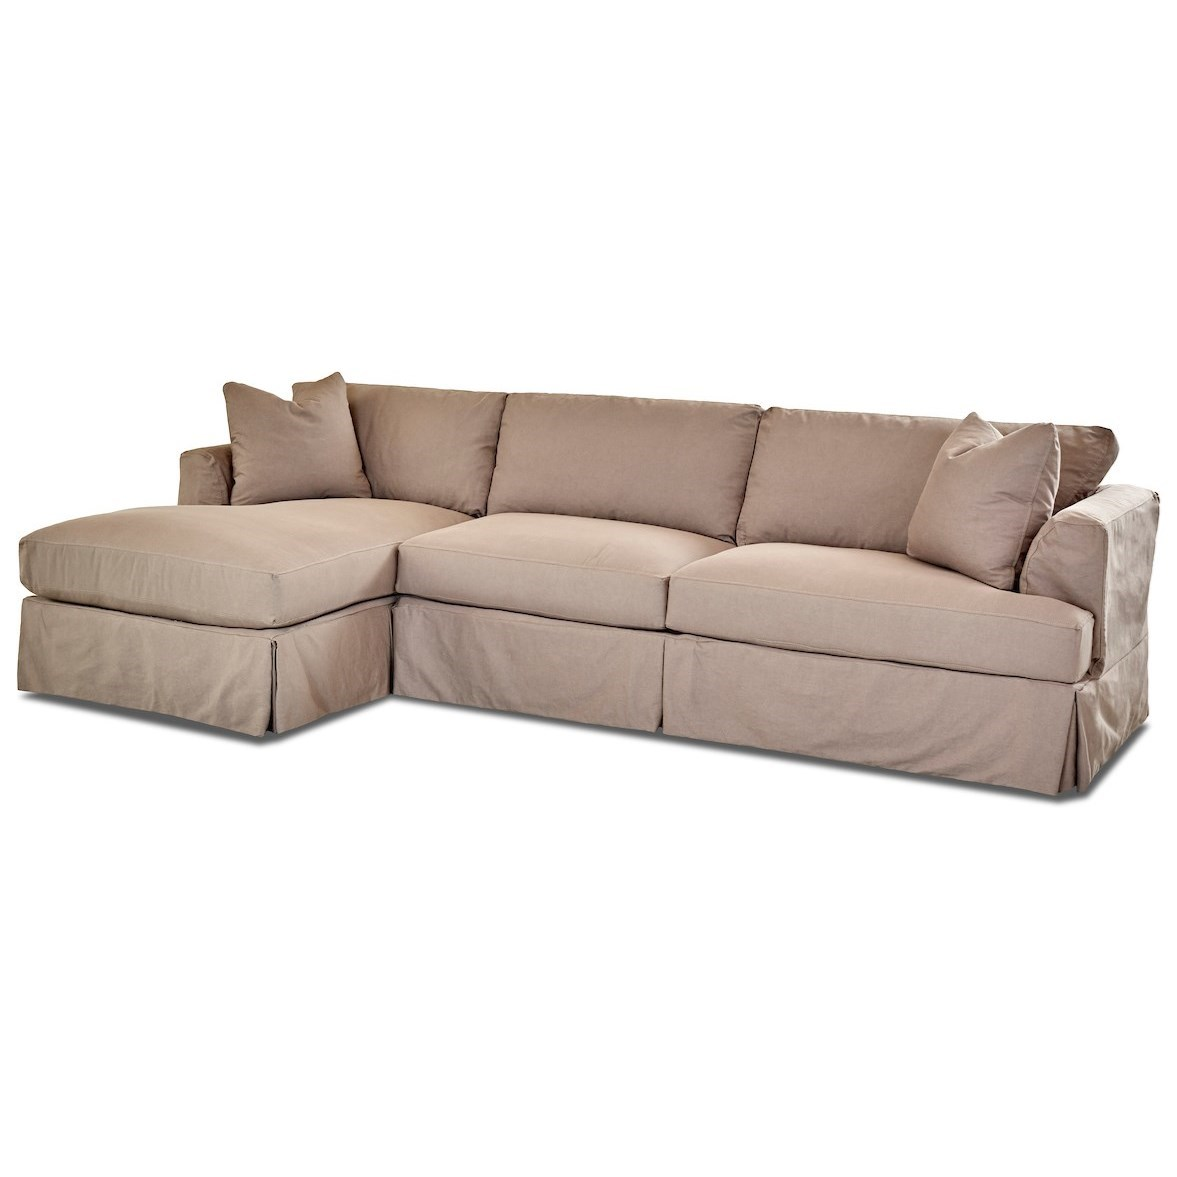 Bentley 3 Seat Chaise Sofa Sectional W Laf Chaise